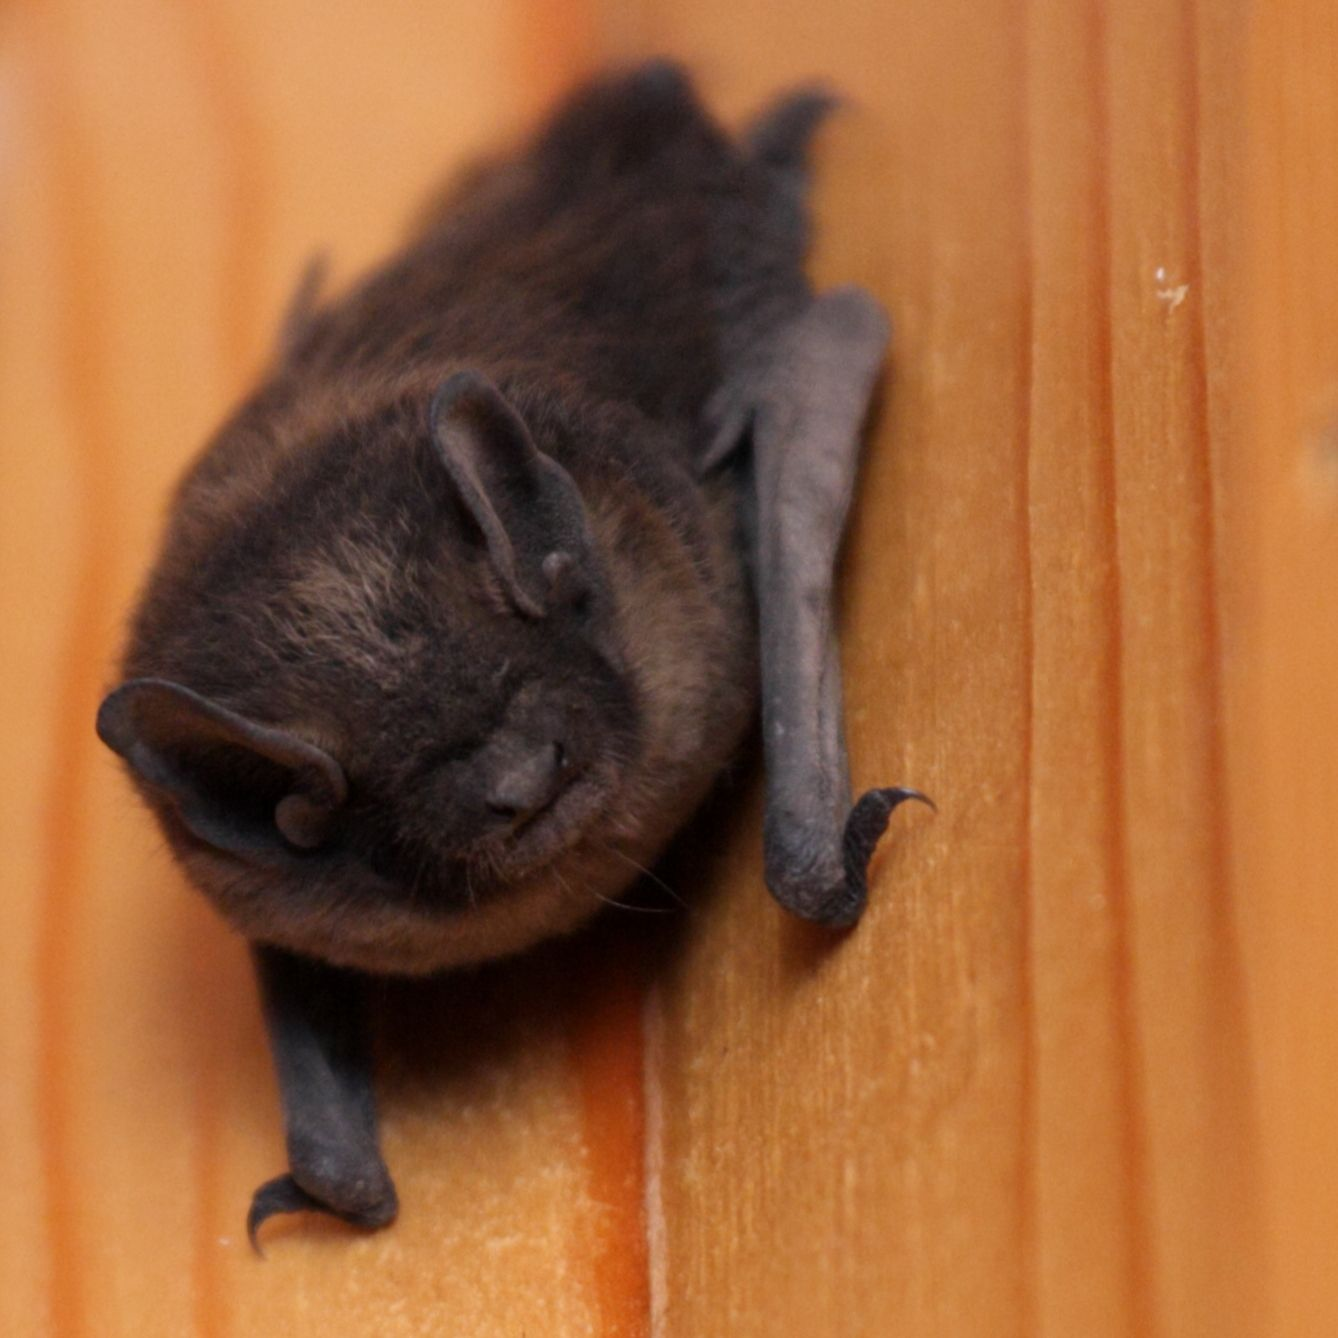 Bat In House What To Do Bat Houses Bat Getting Rid Of Bats